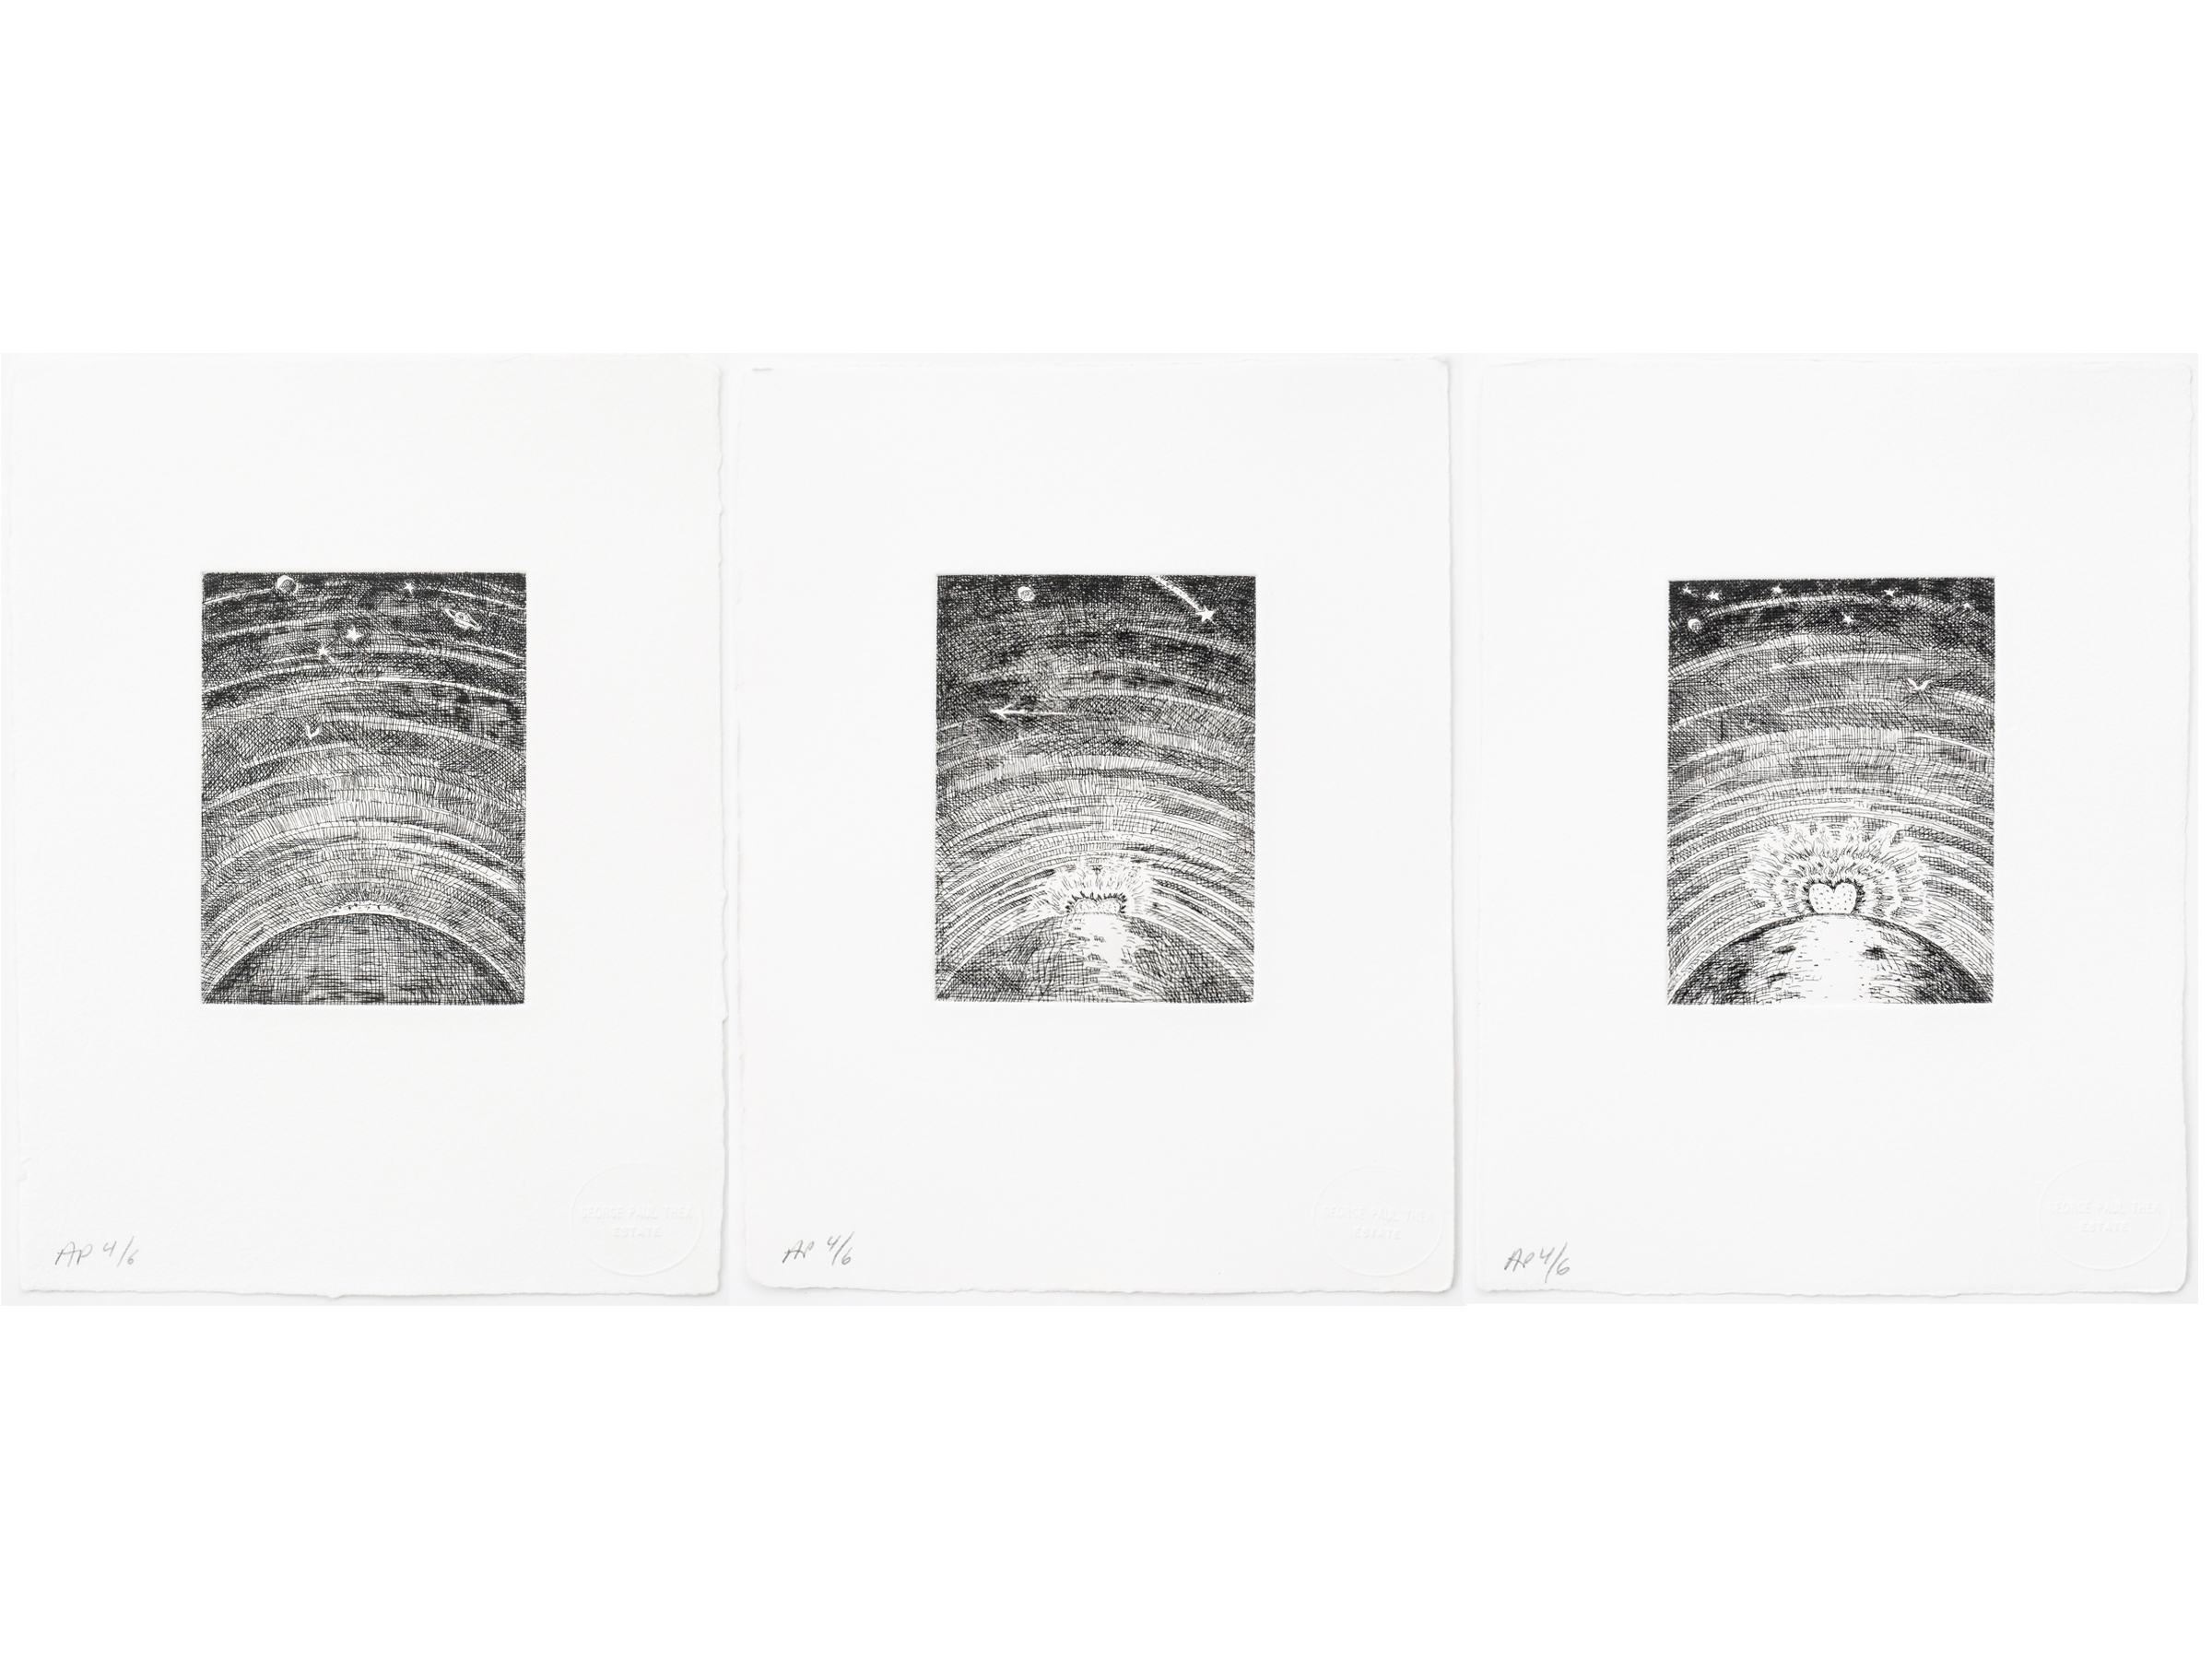 Paul Thek Rising Heart Versions 1, 2 and 3